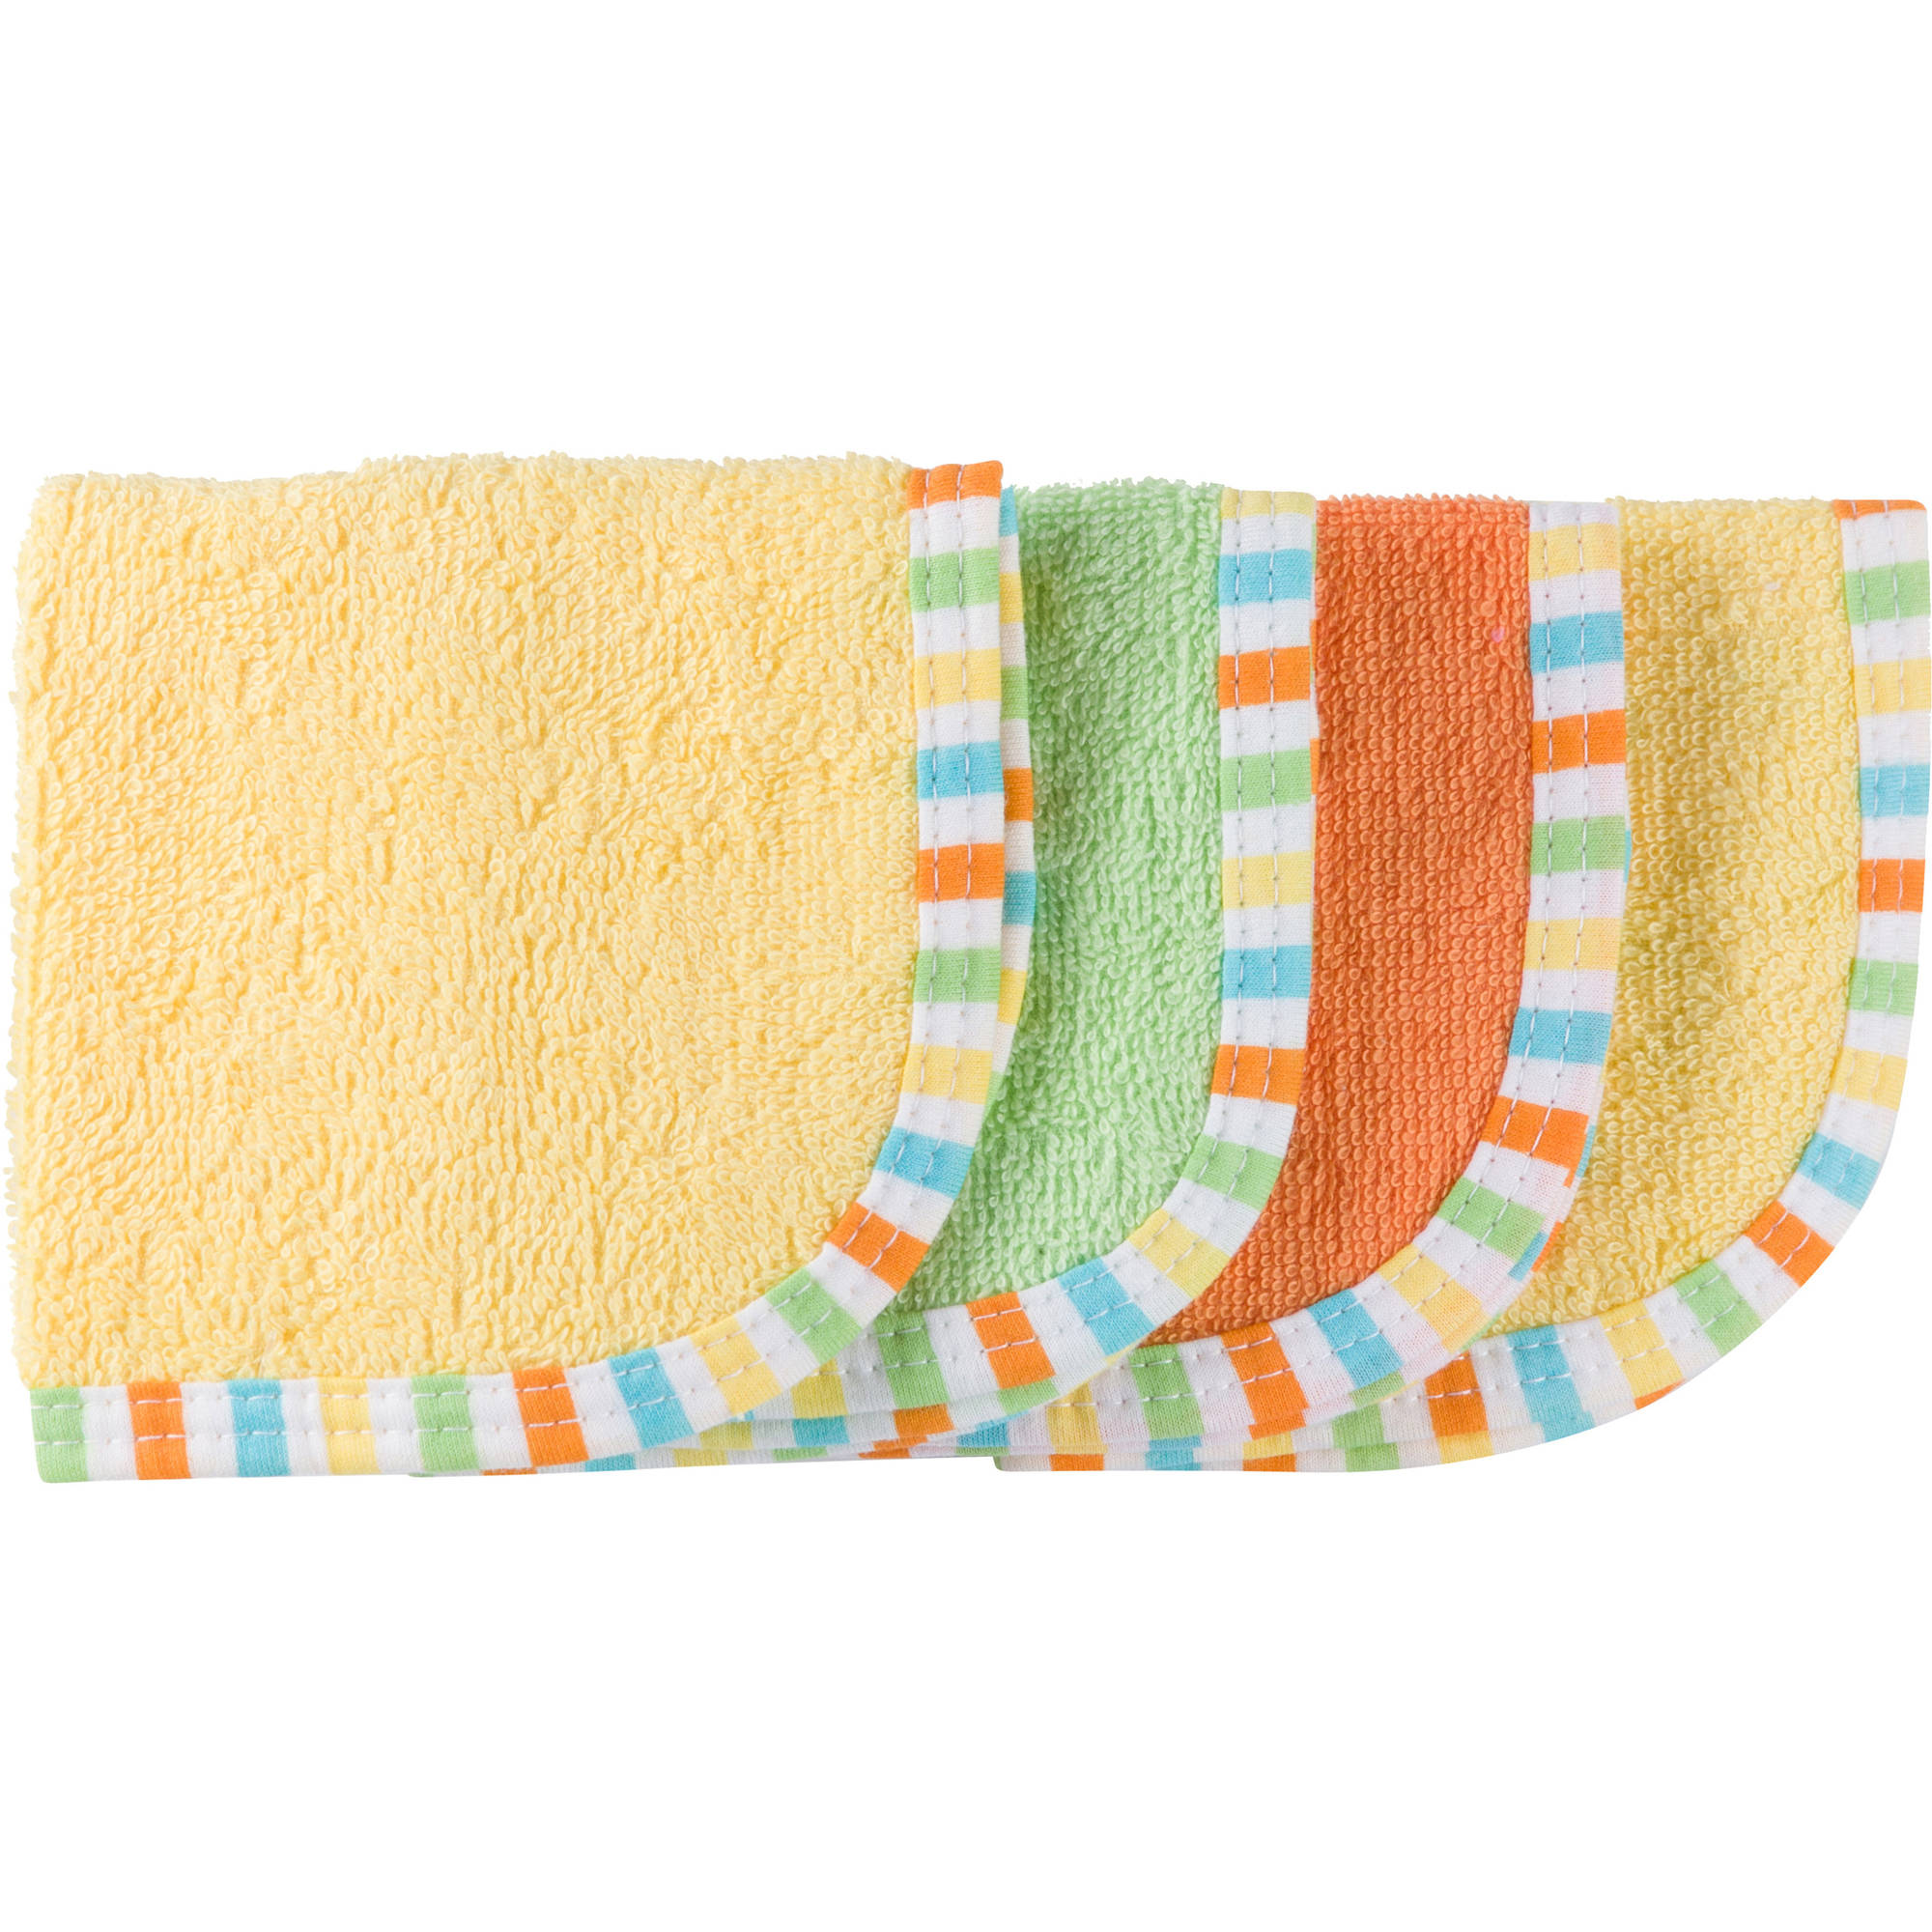 Gerber Baby Boy or Girl Unisex Woven Terry Solid Washcloths, 4-Pack